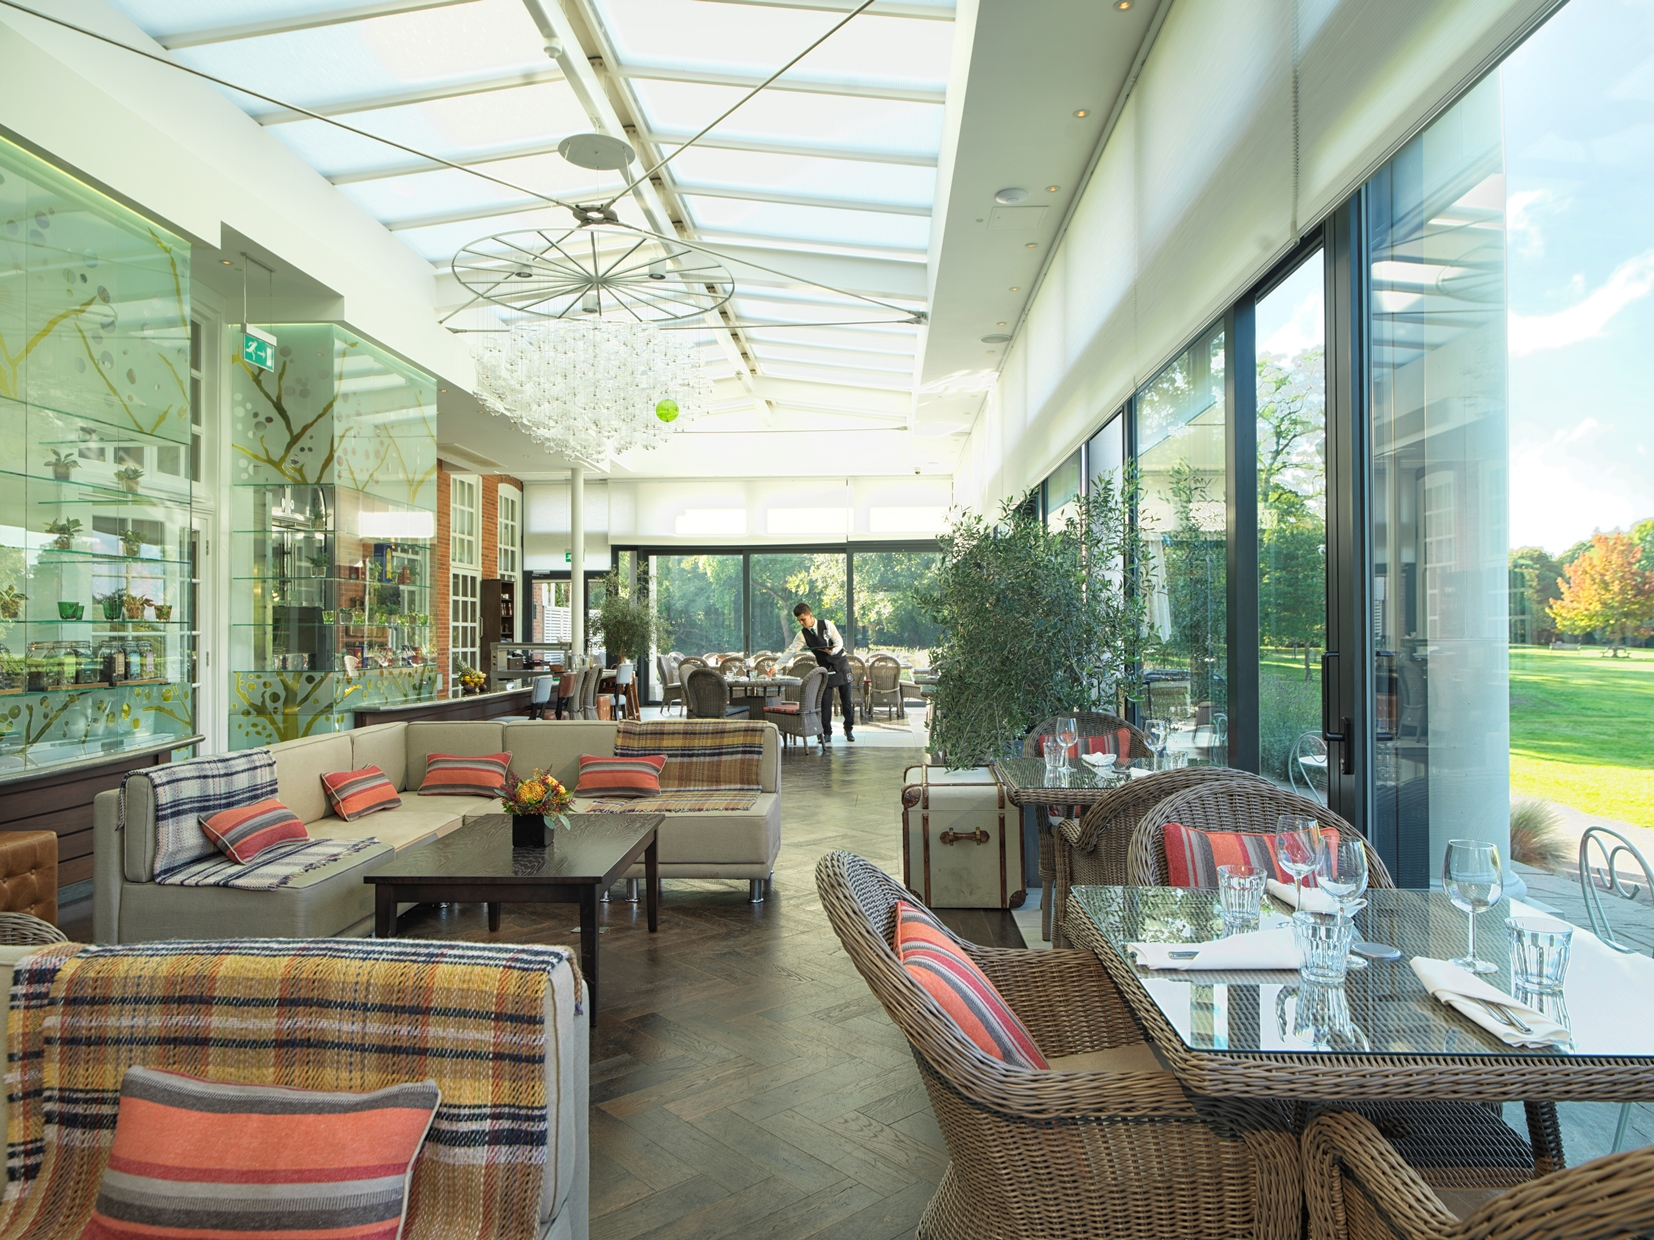 The Orangerie overlooking Cannizaro Park for shared parties of 2-20